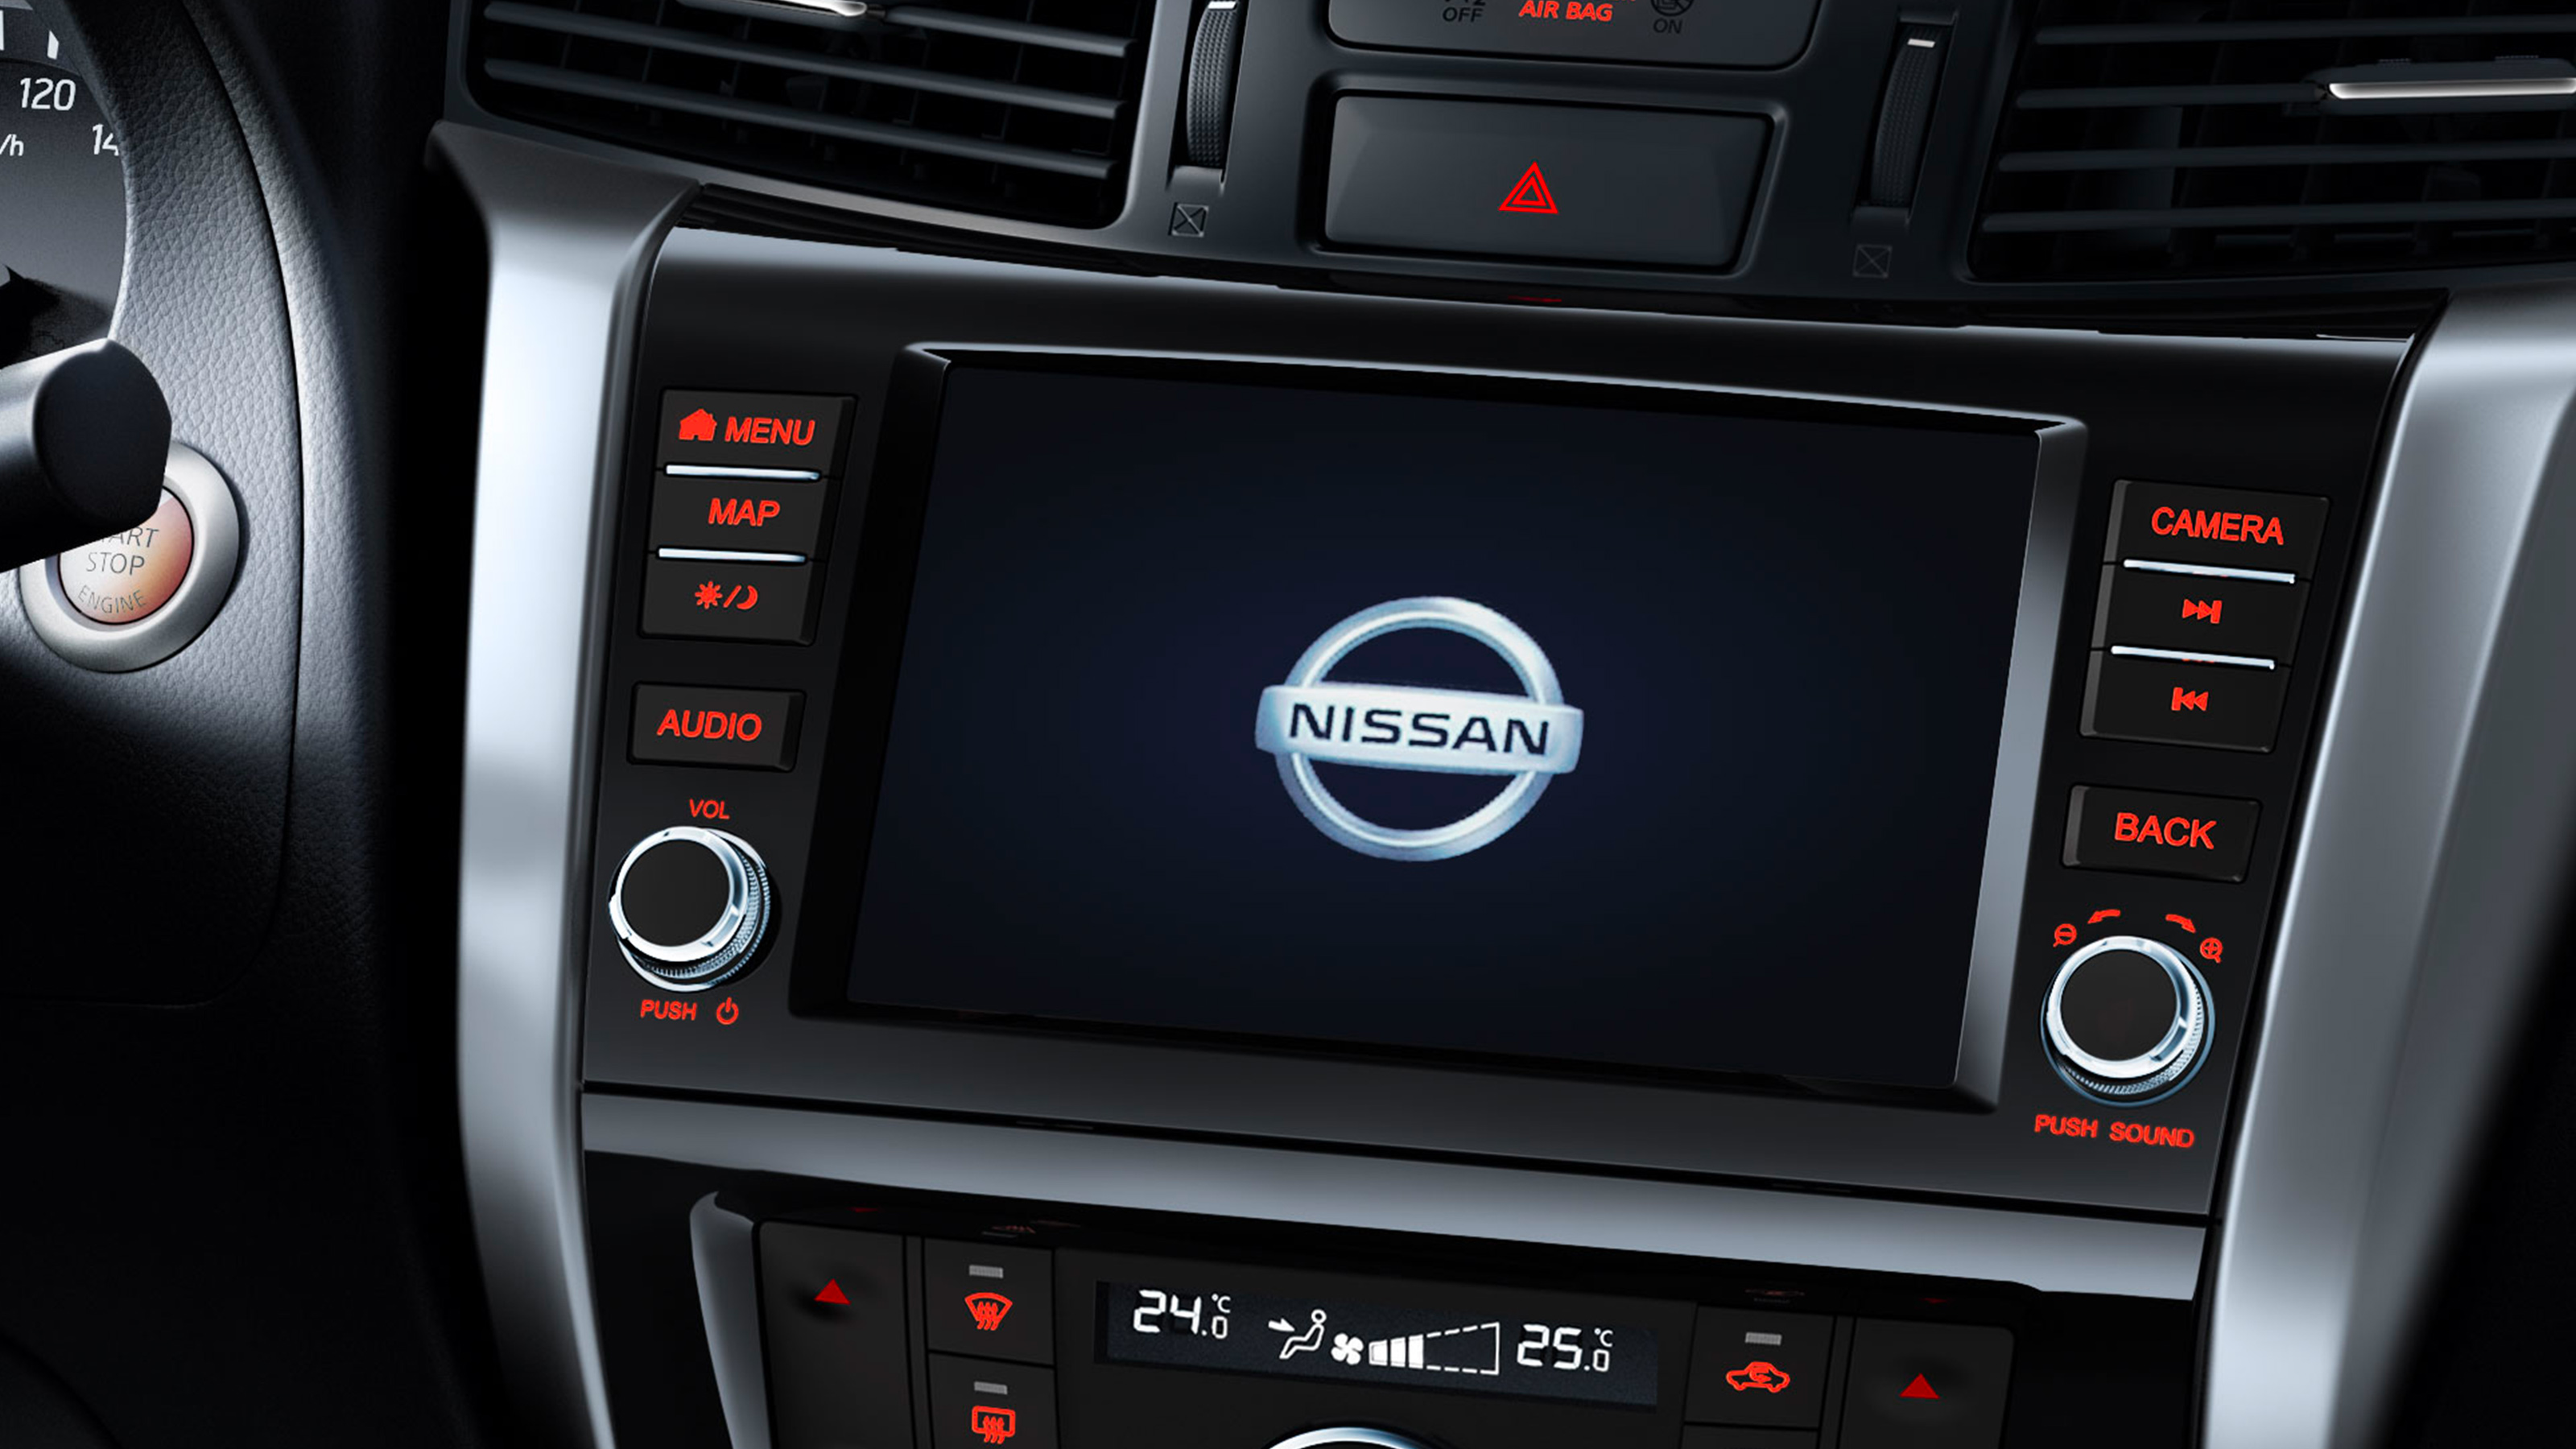 Nissan Navara detail shot of the central console screen